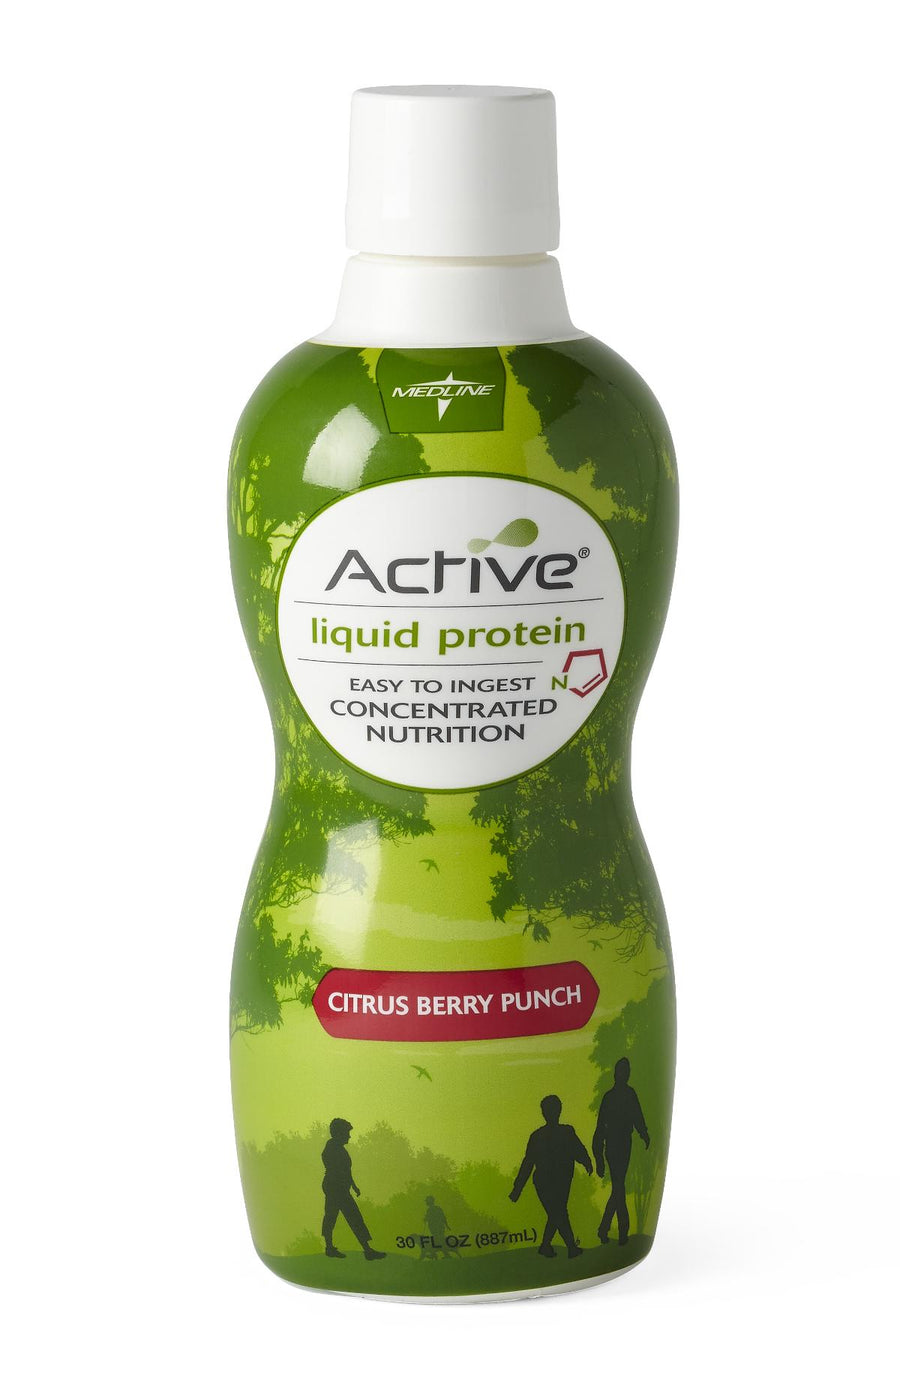 Active Liquid Protein Nutritional Supplement,30.000 OZ, Case of 4